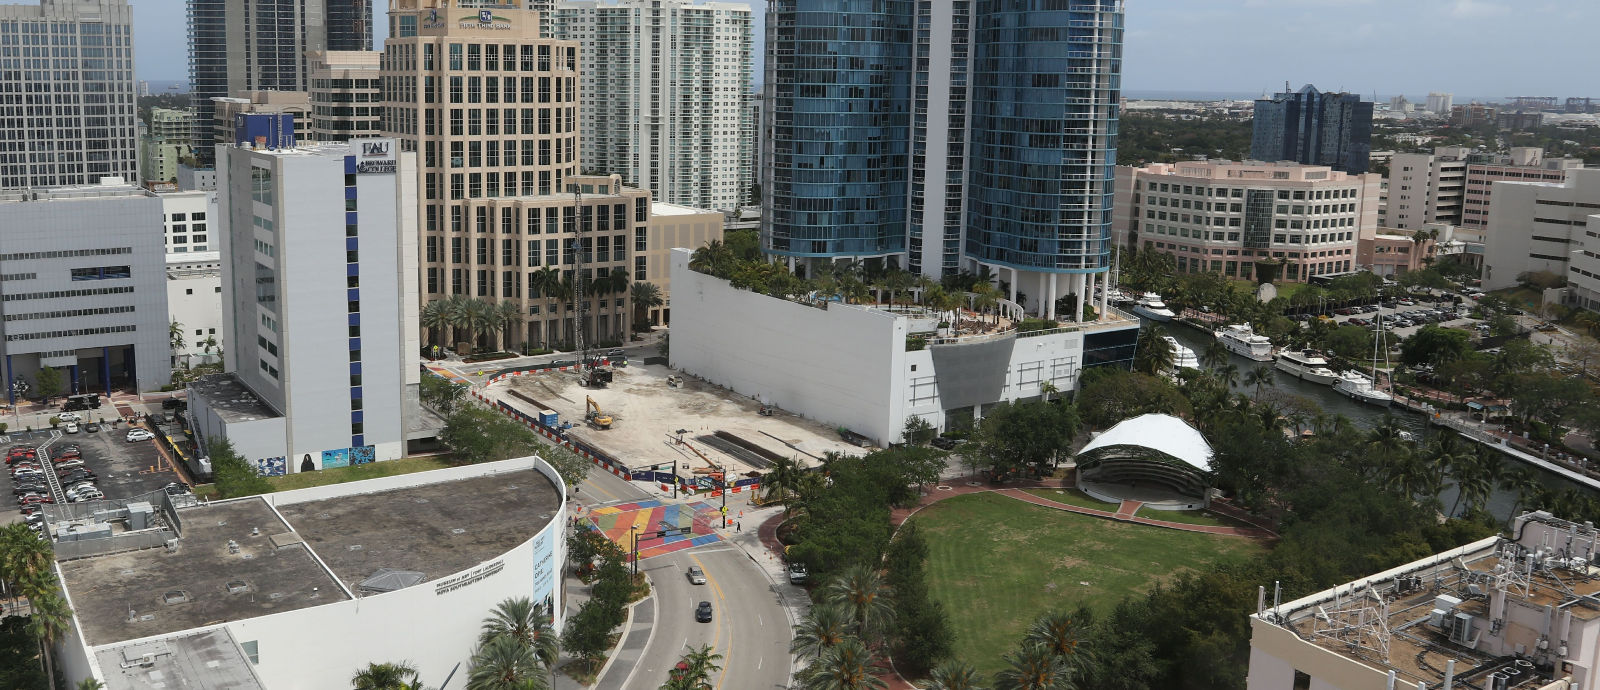 100 Las Olas March 2017 Construction